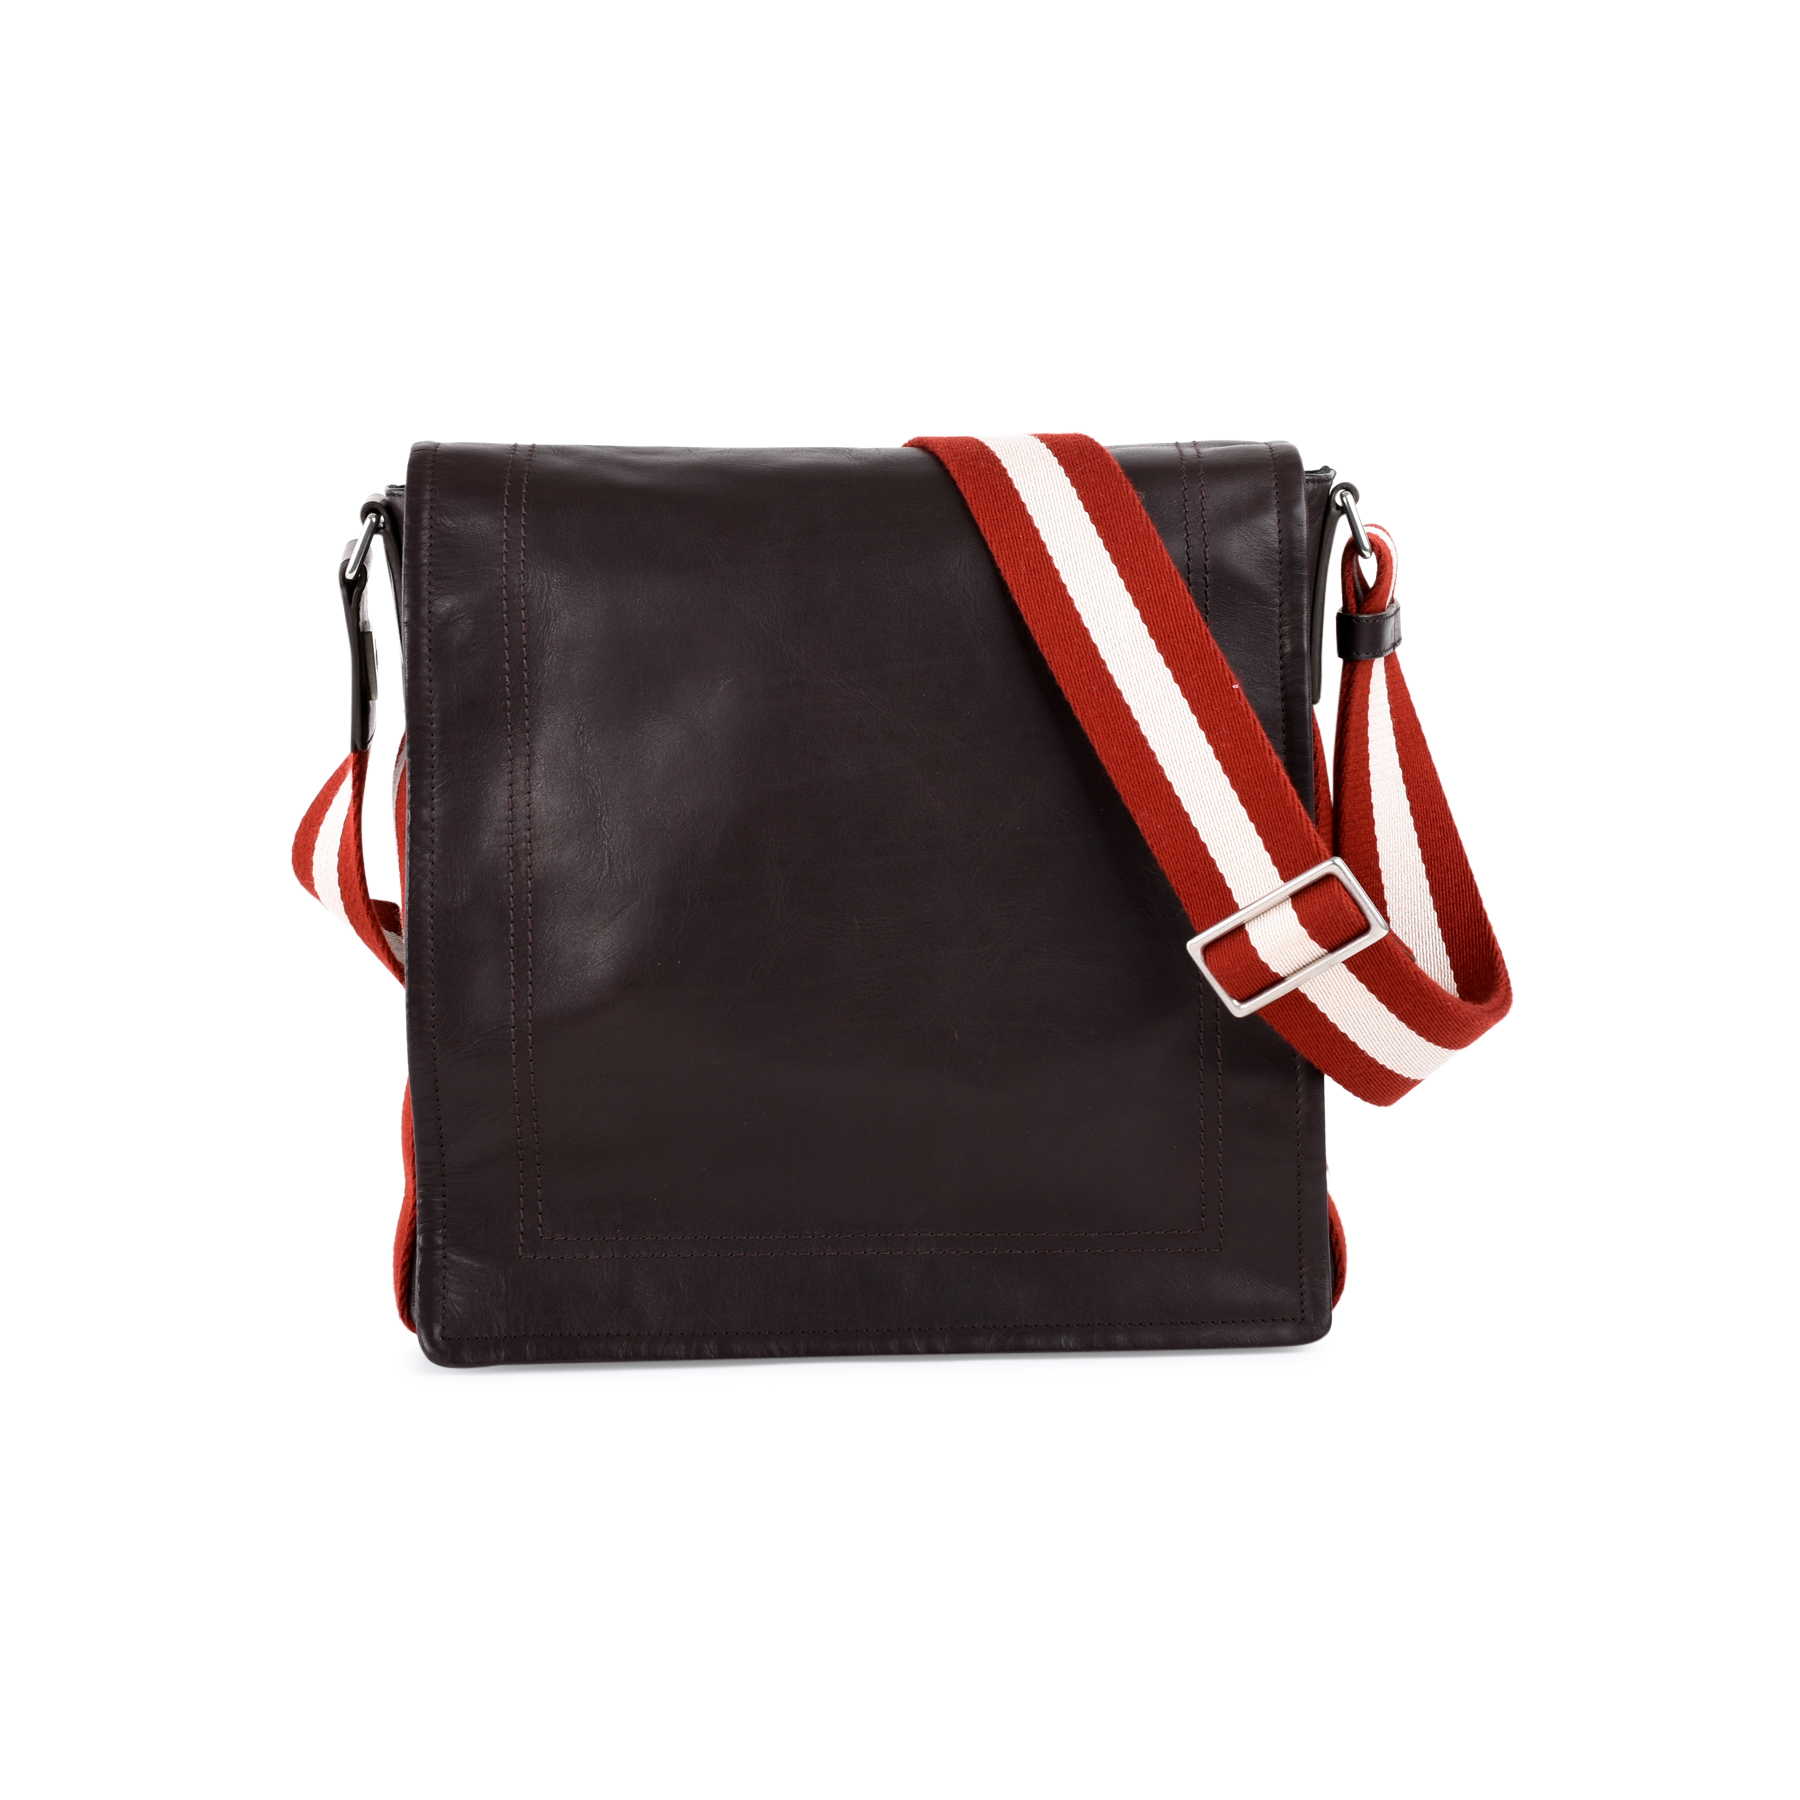 992e48c5f6 Authentic Second Hand Bally Leather Messenger Bag (PSS-462-00021) - THE  FIFTH COLLECTION